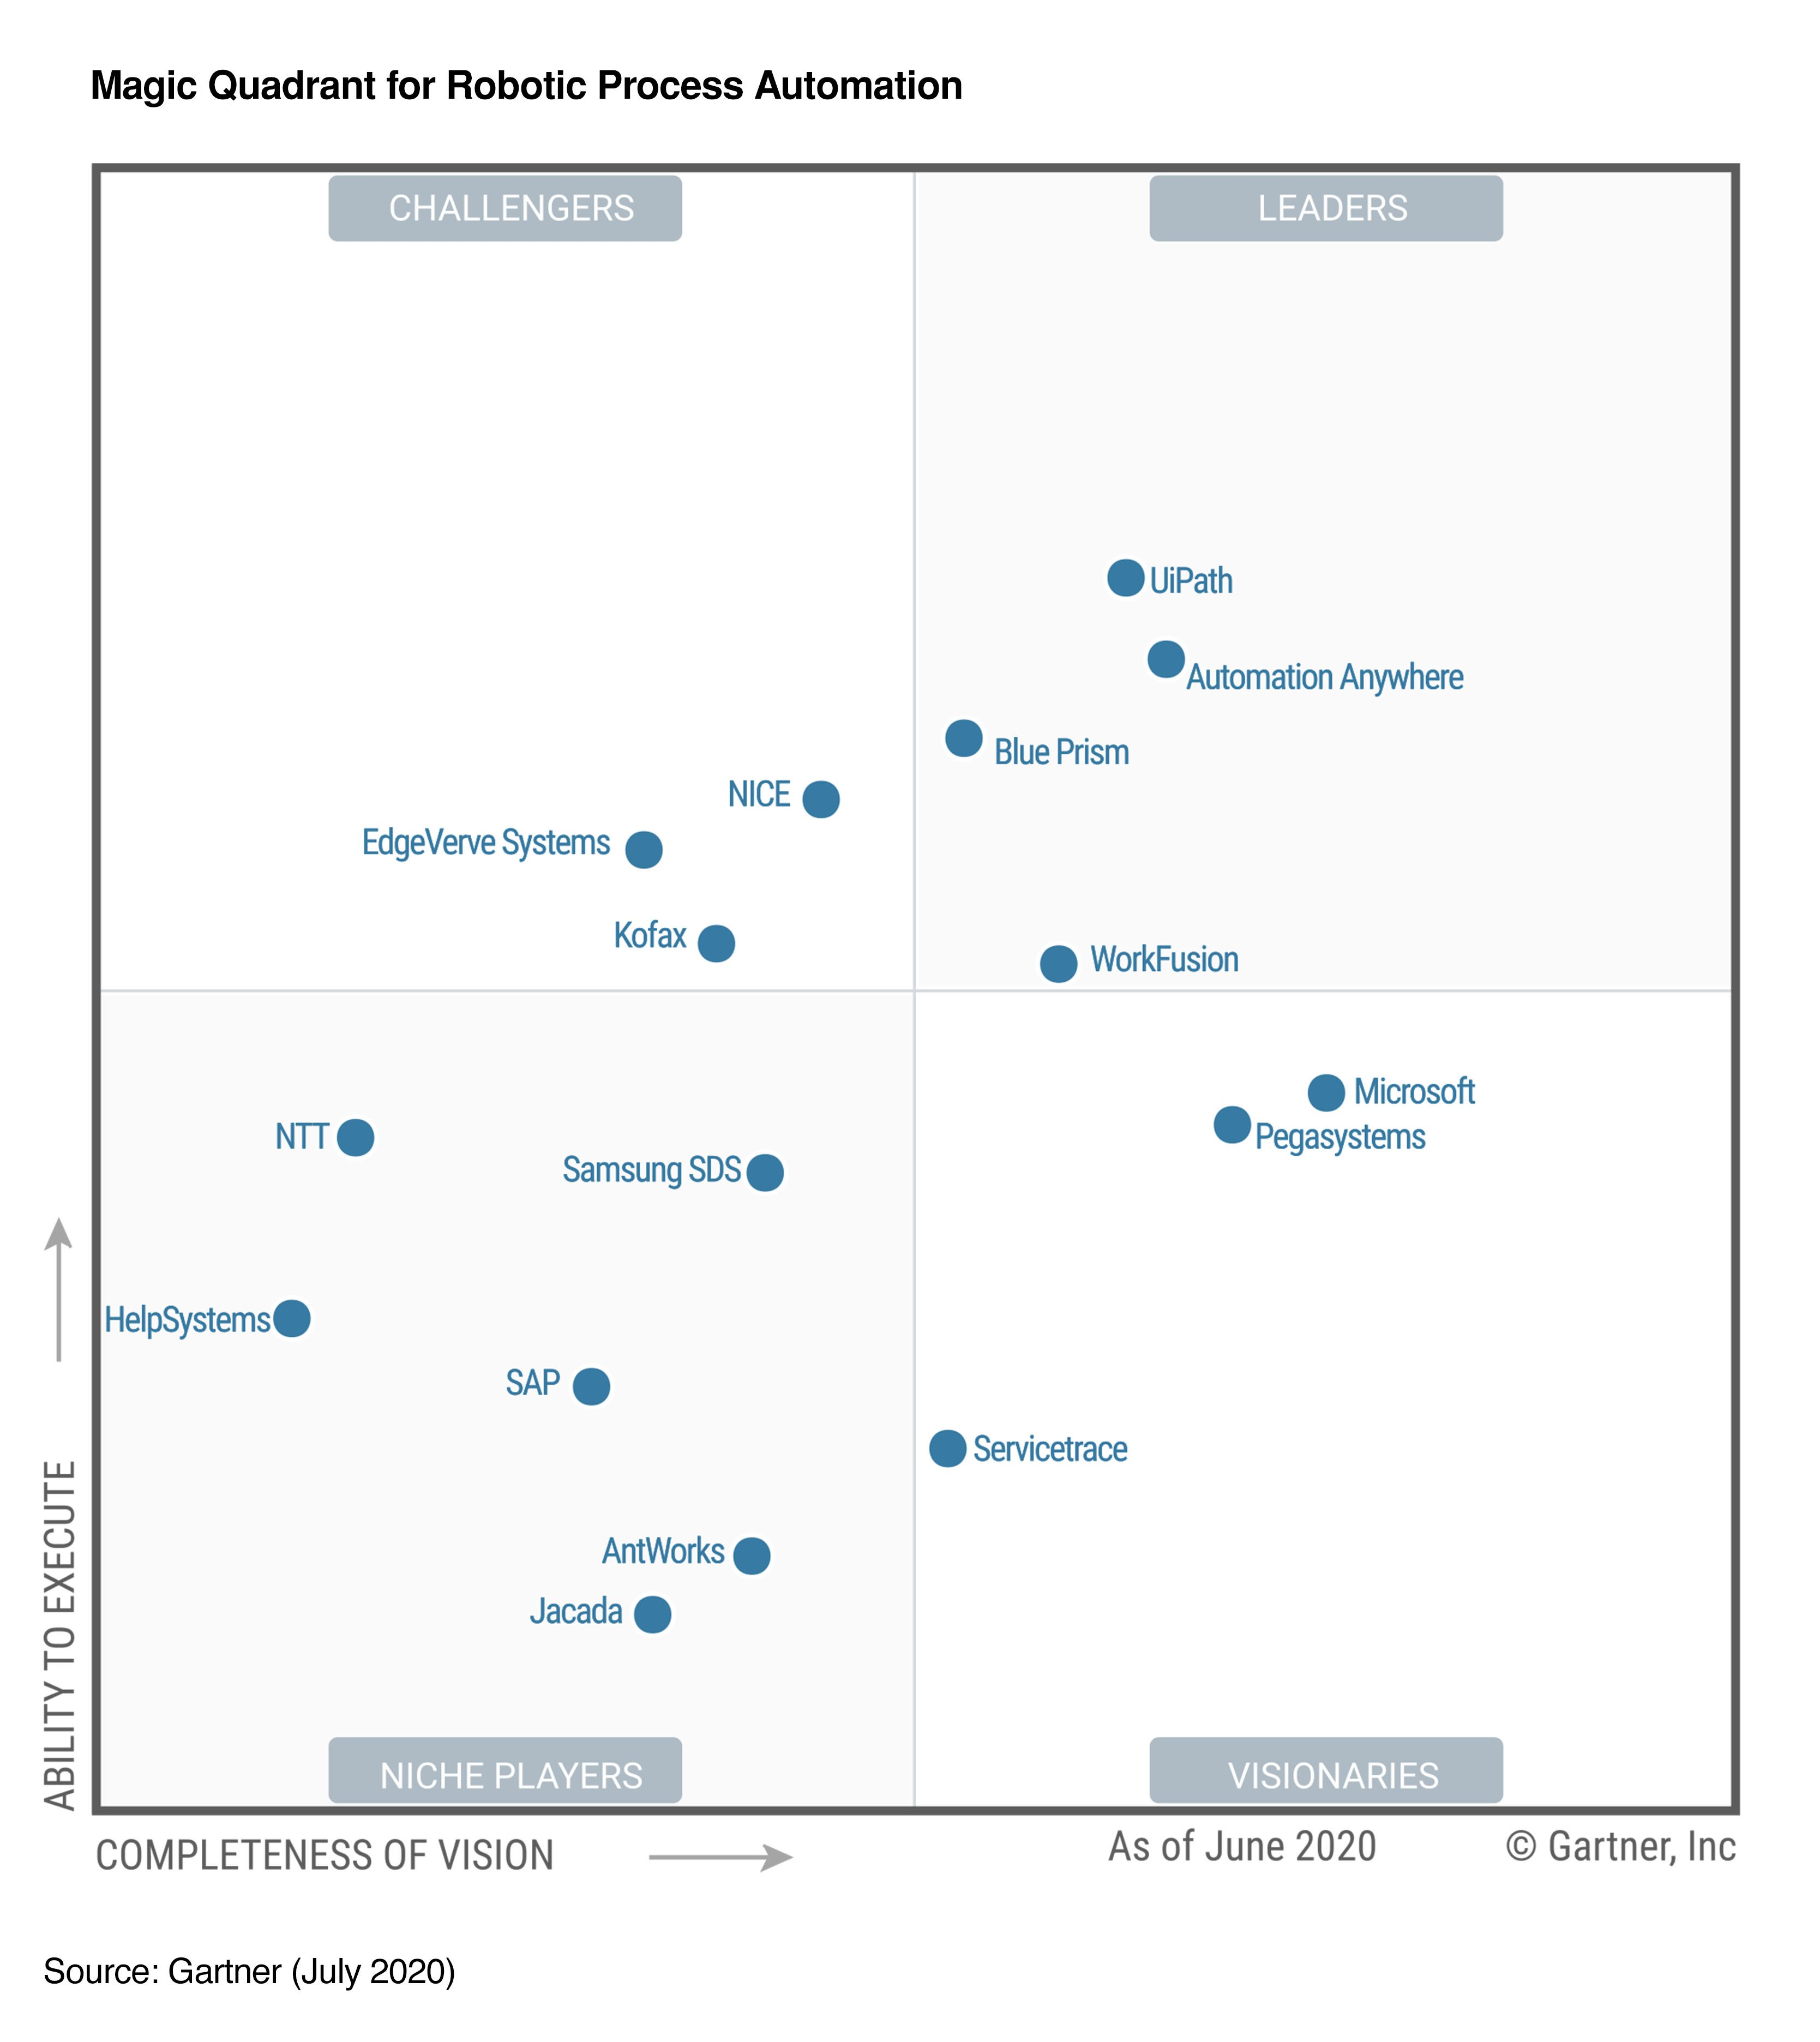 robotic-process-automation-gartner-2020-leaders